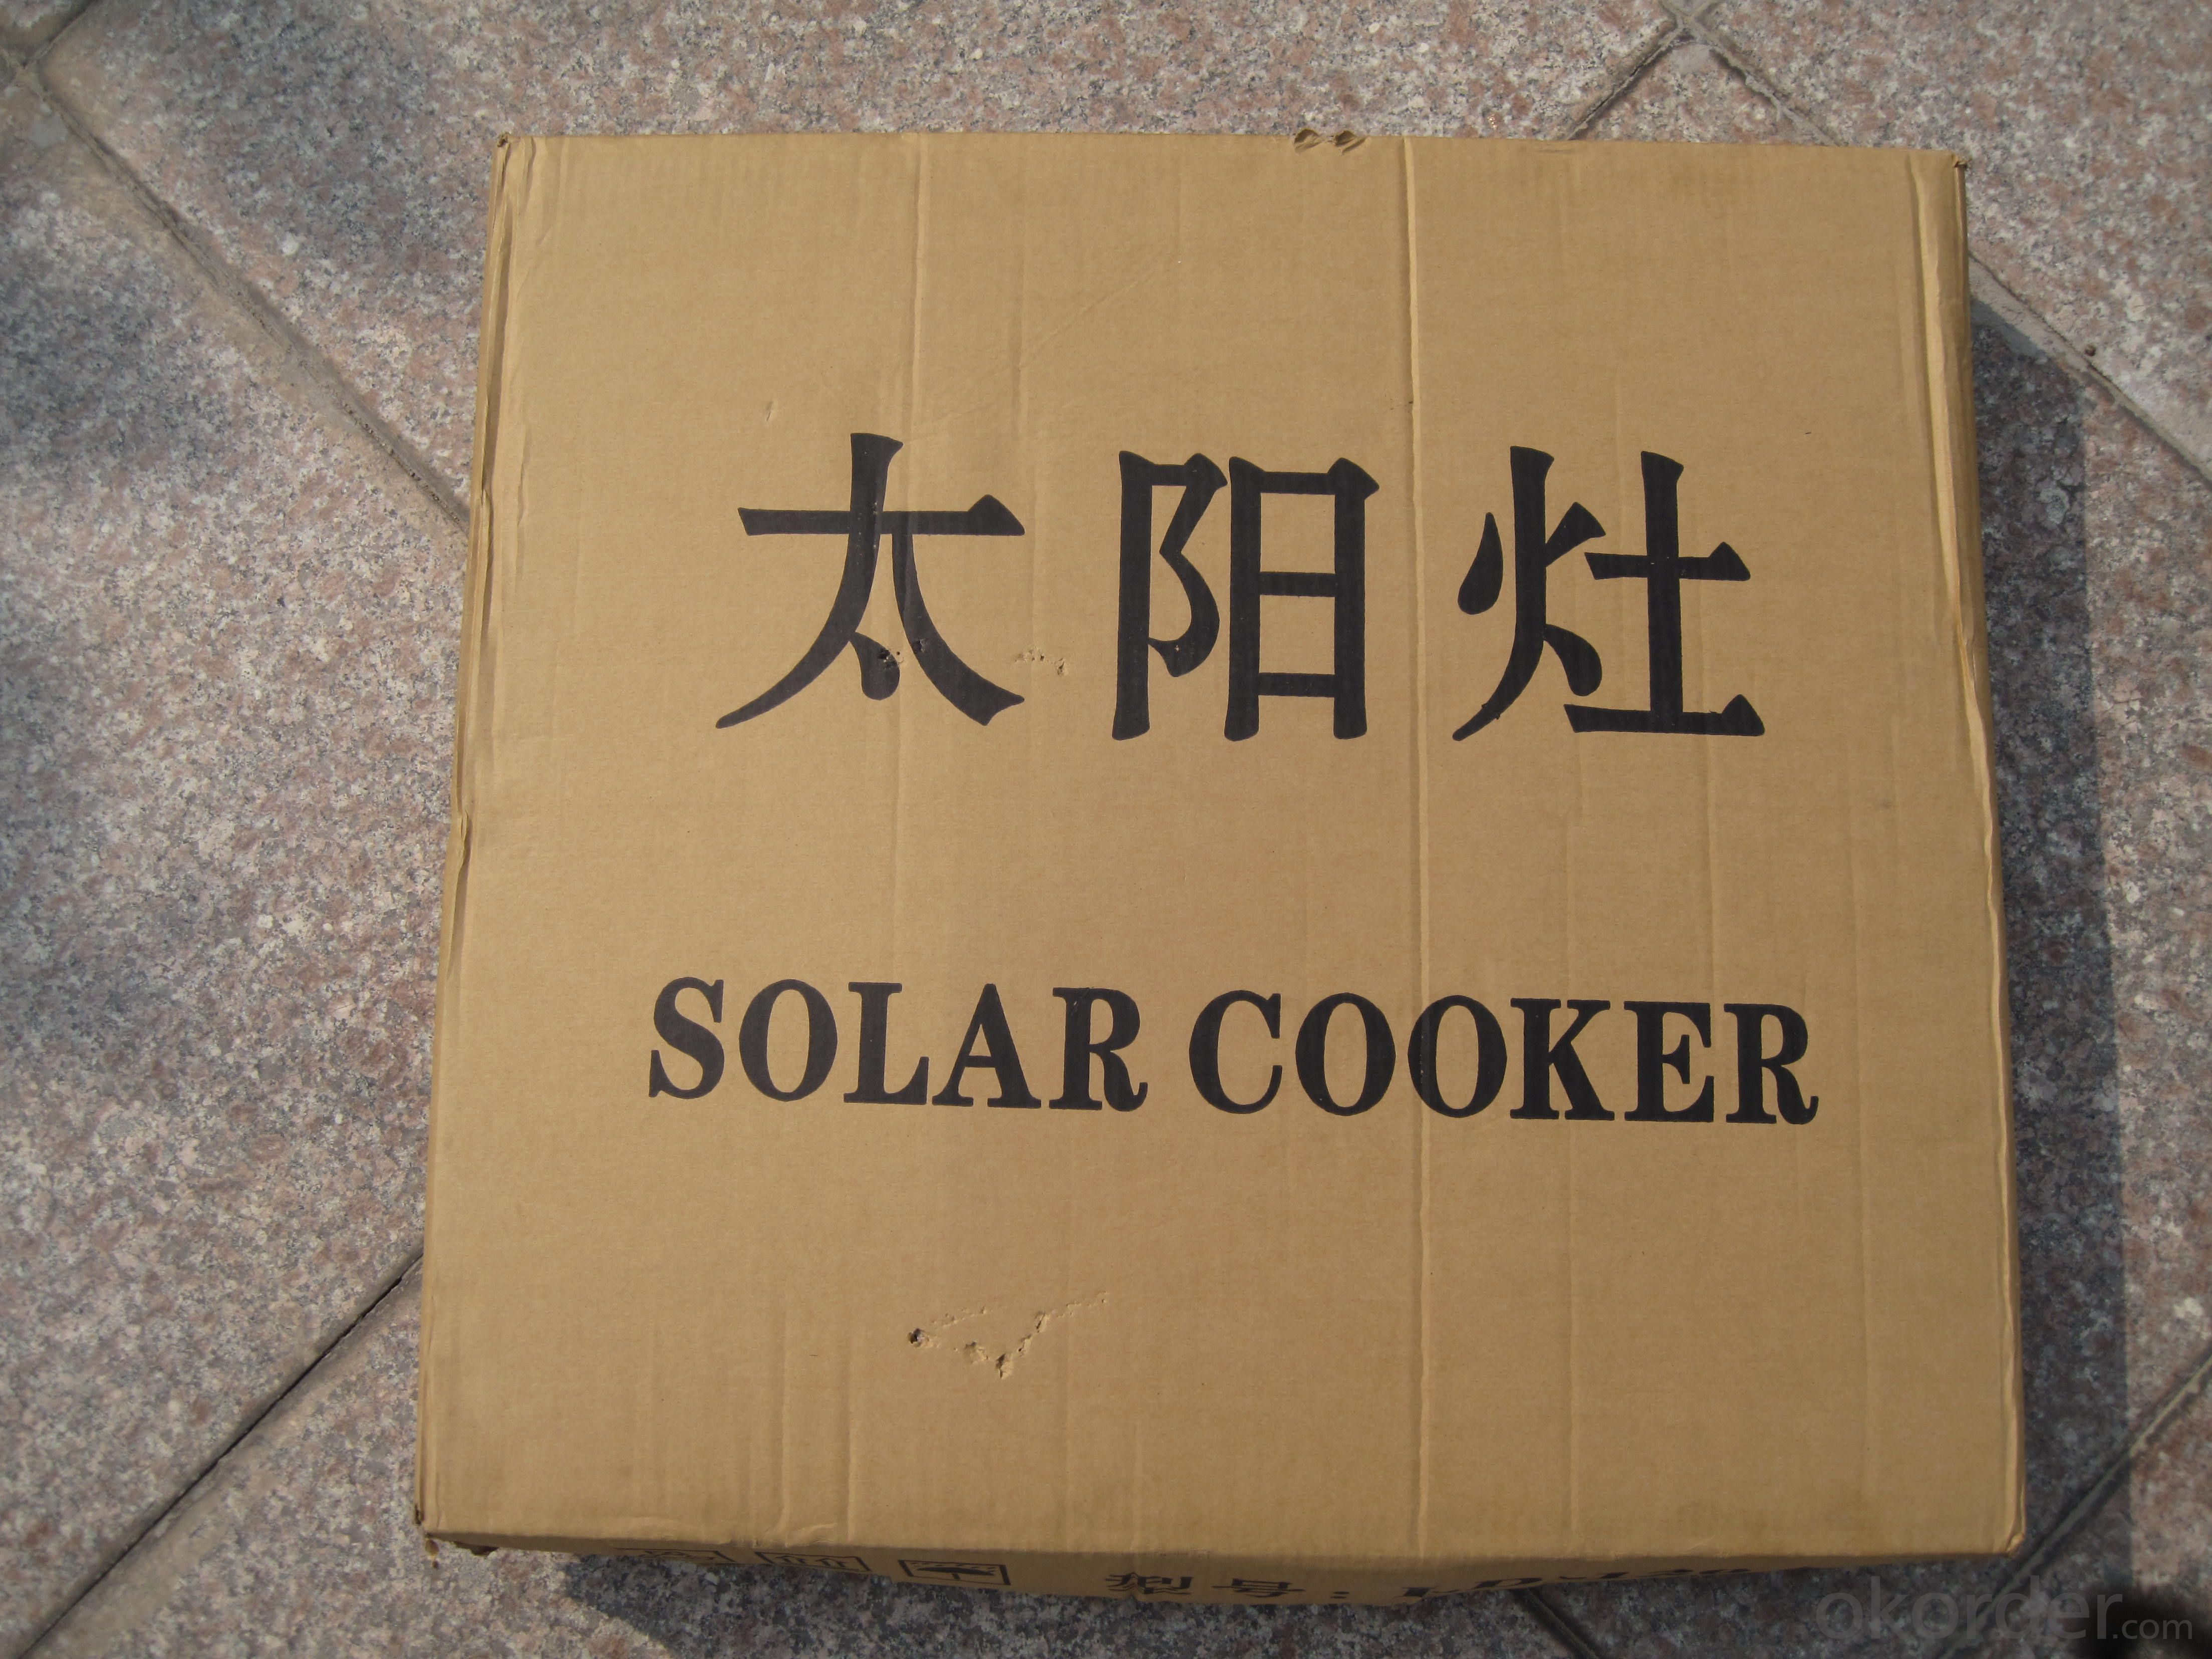 SolSource Parabolic Solar Cooker